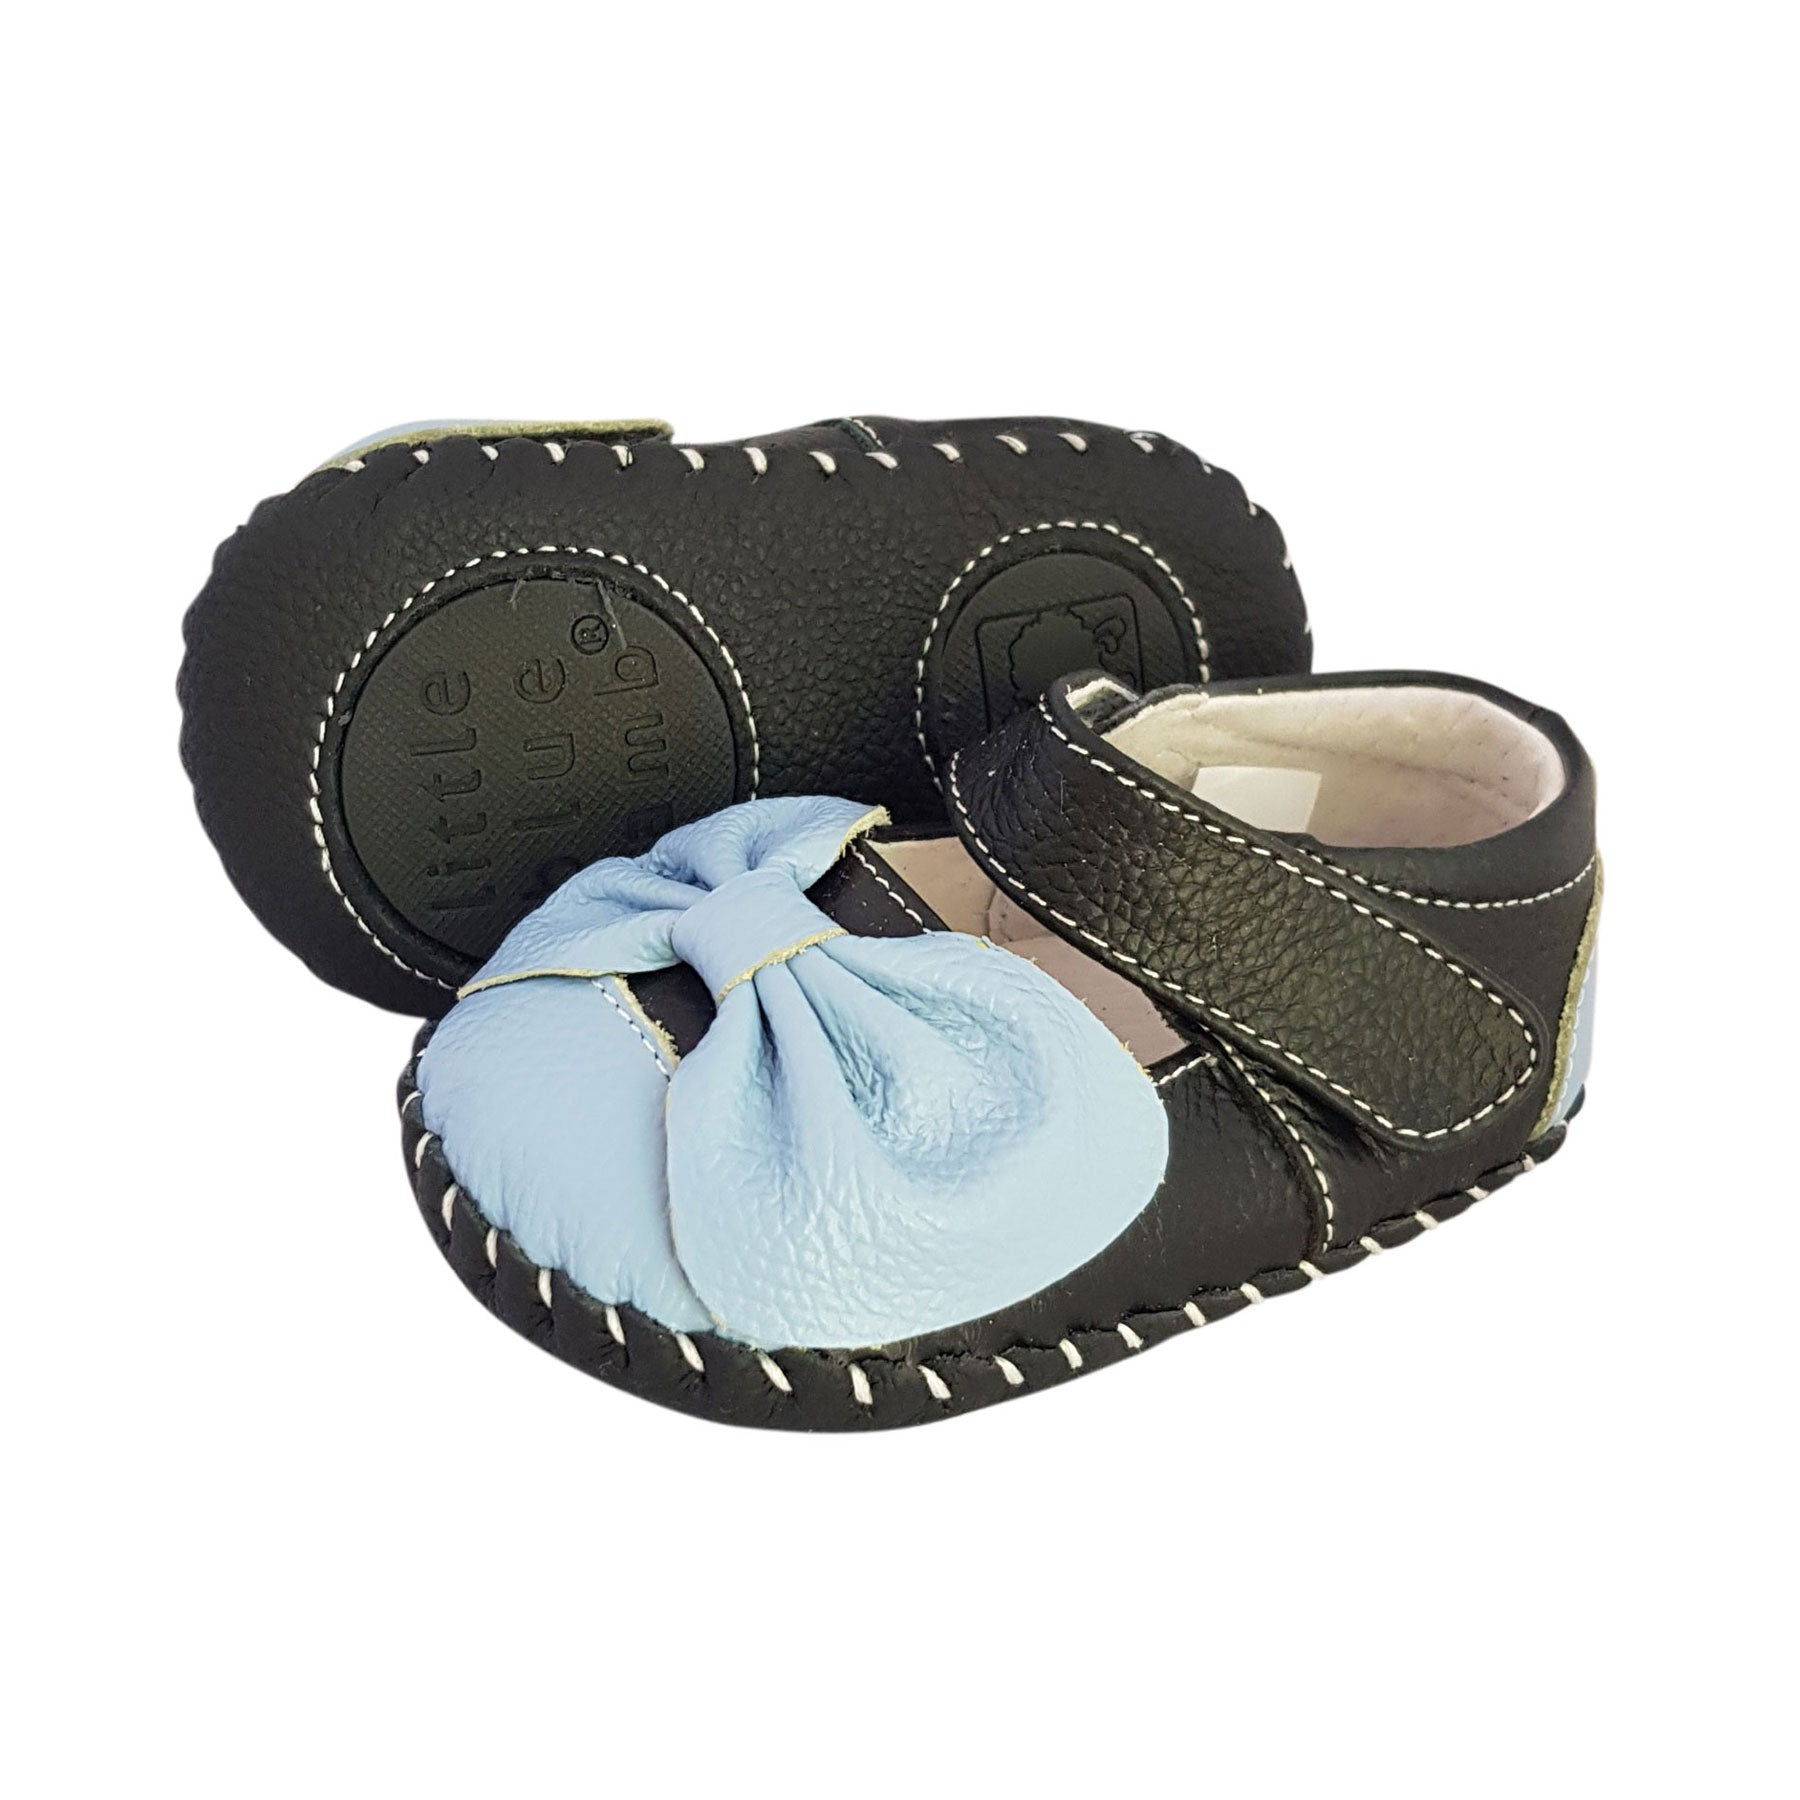 afe0cff45a Load image into Gallery viewer, 2FeetTall | Girls leather baby shoes with  bow side on ...